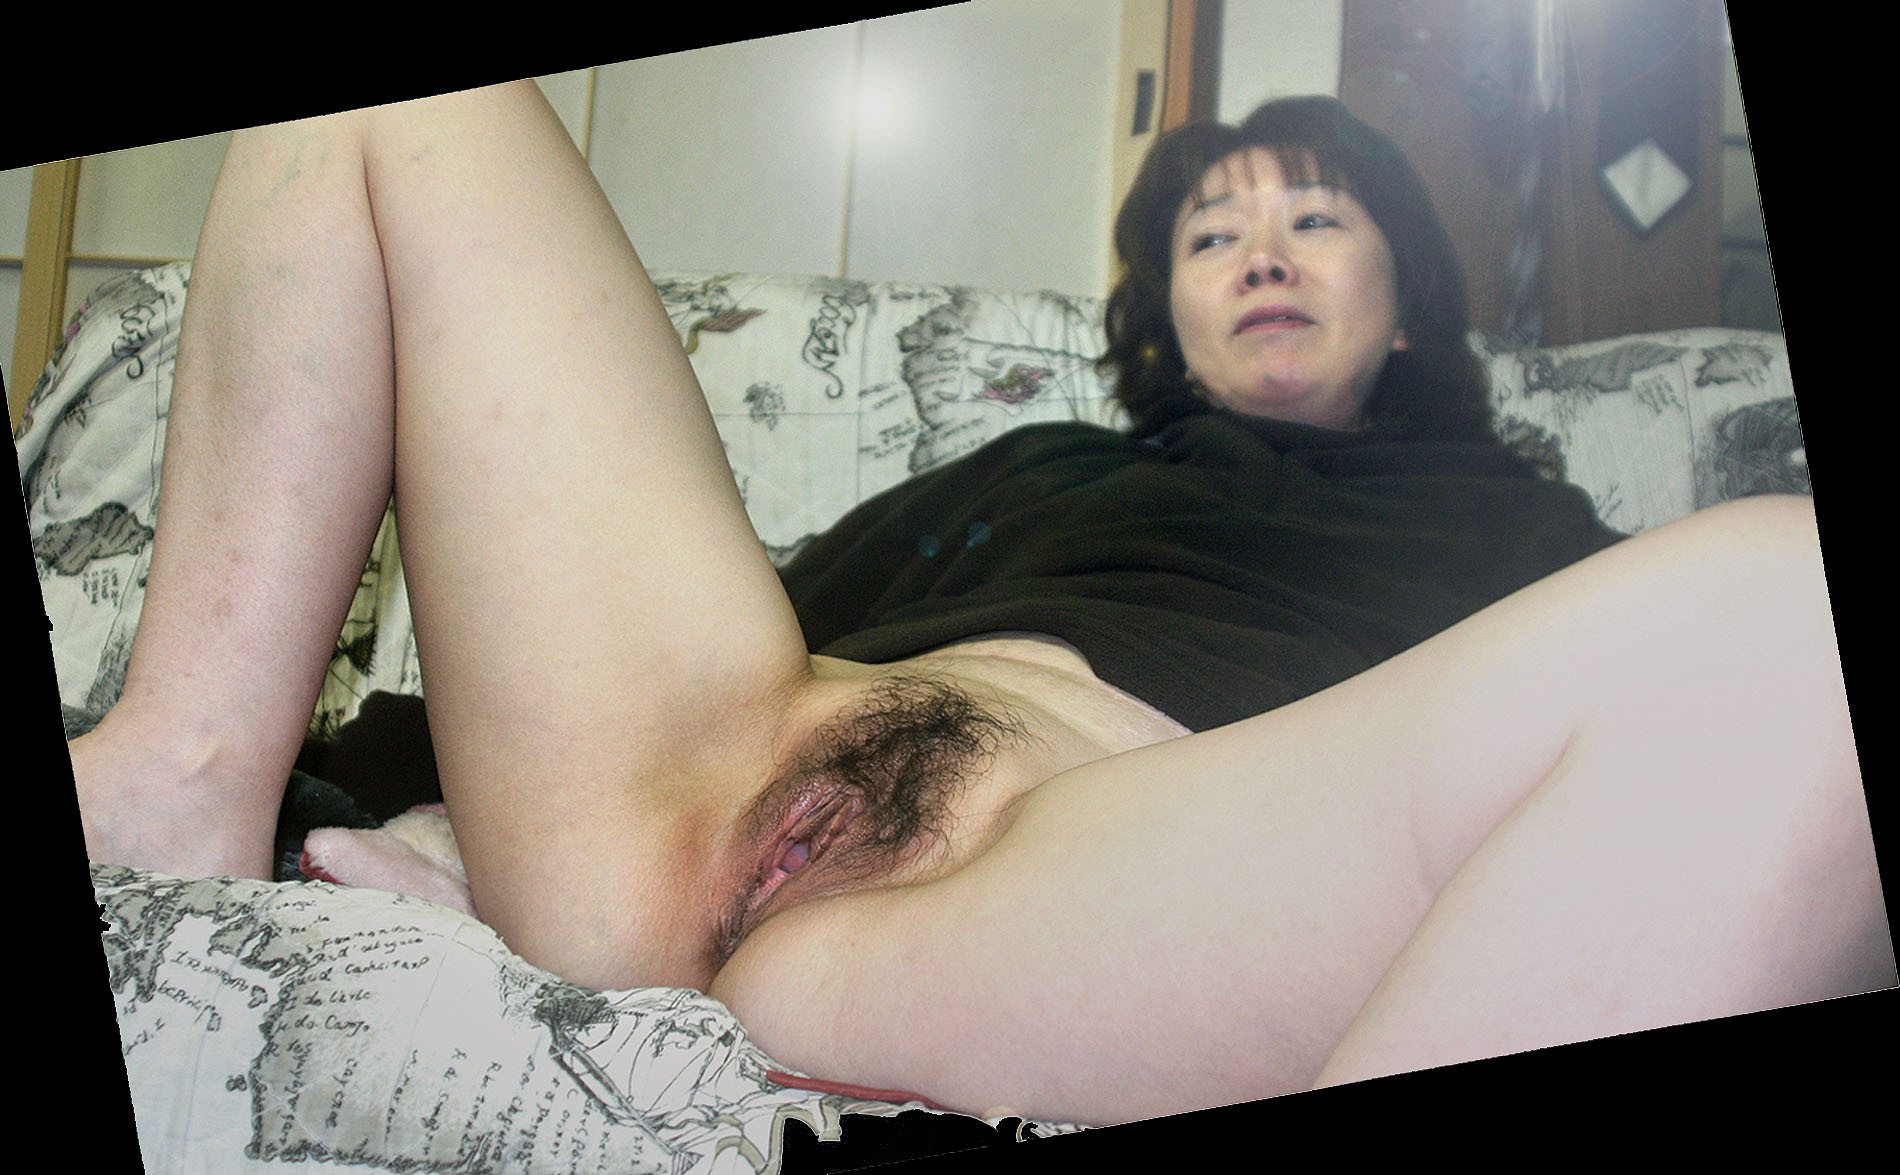 Variant mature japan porn video quite good